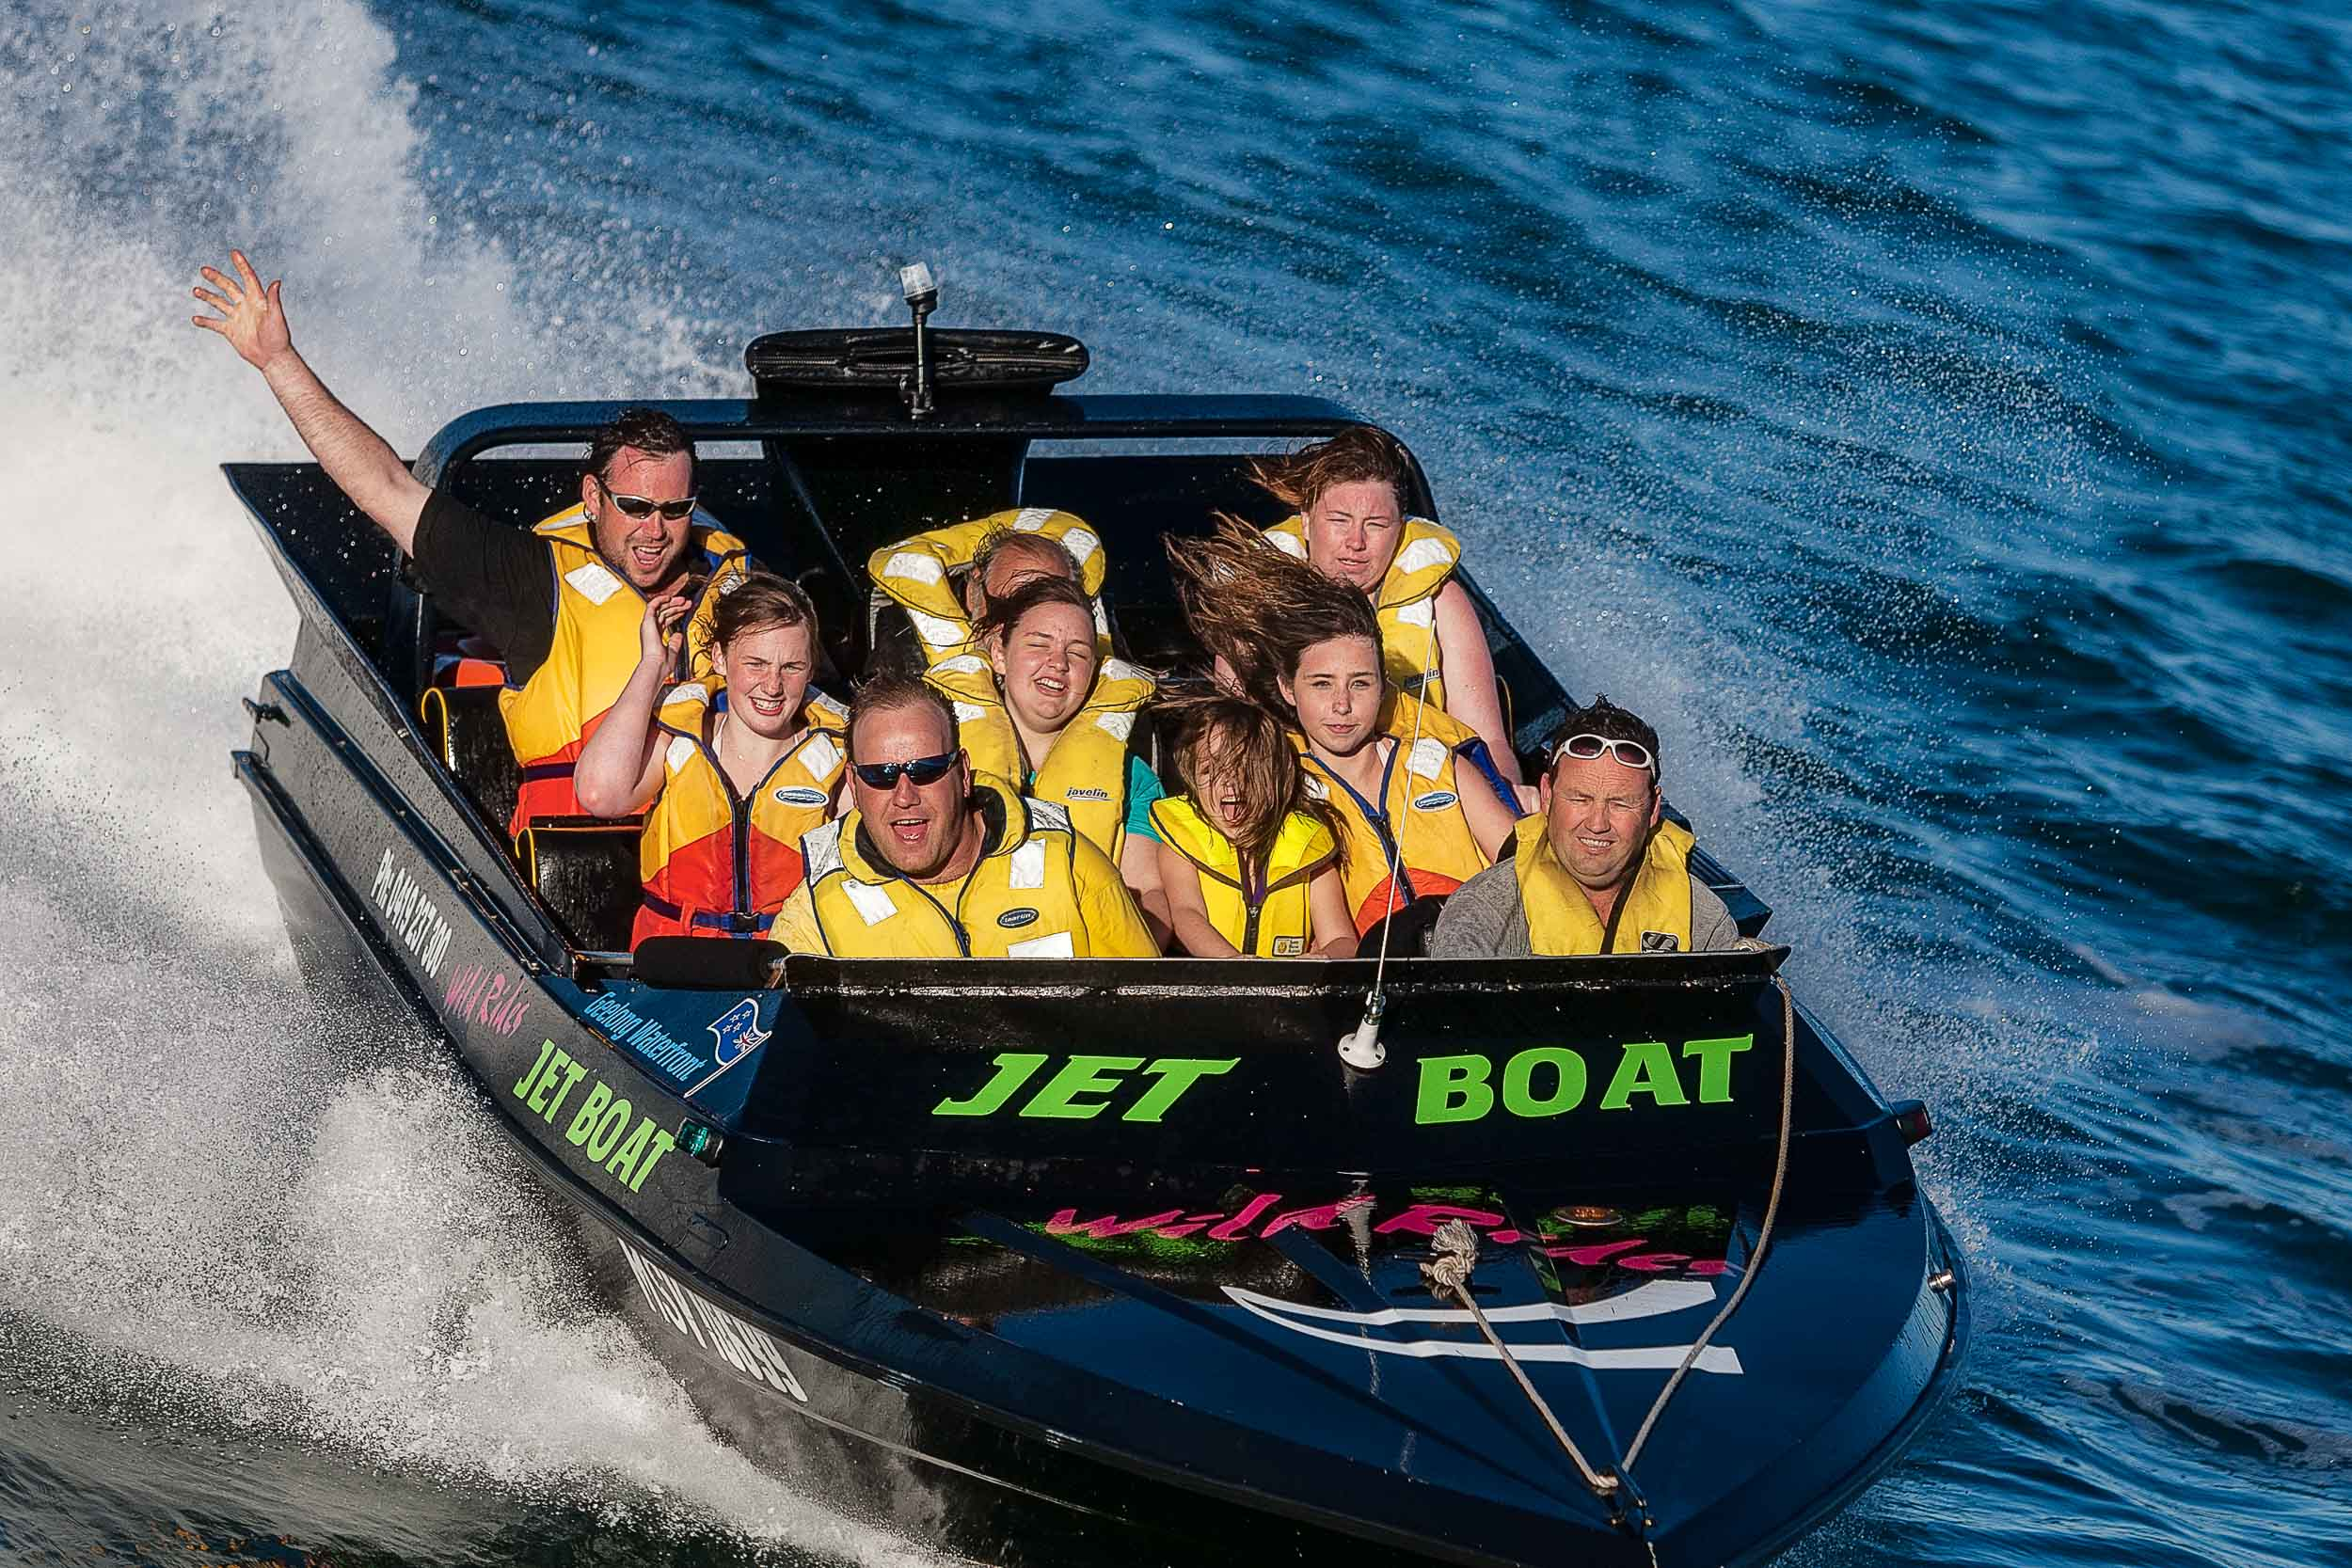 Excitement is evident on the faces of passengers as they    jet boat    around the harbour in    Geelong, Australia   .